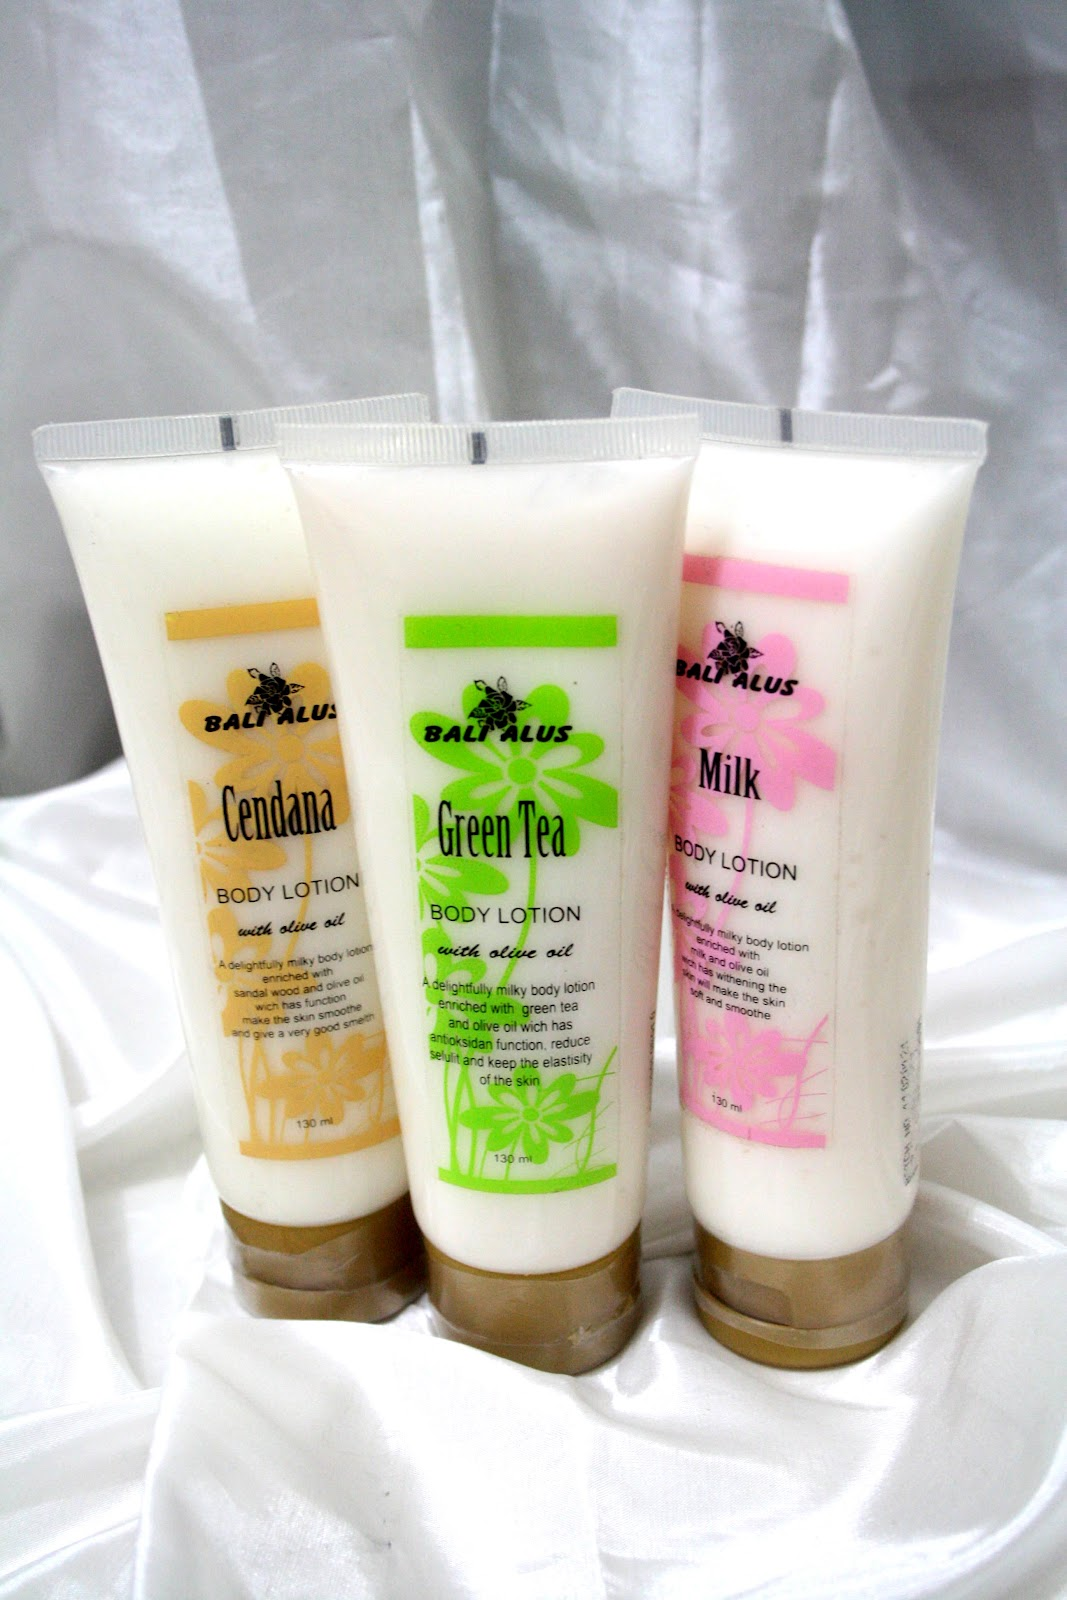 Lulur Cream Bali Alus Scrub With Vco Julia Outlet For Buy 1 Get Green Tea Srub Hand Body Lotion Aroma Therapy Kemasan Baru 130 Ml